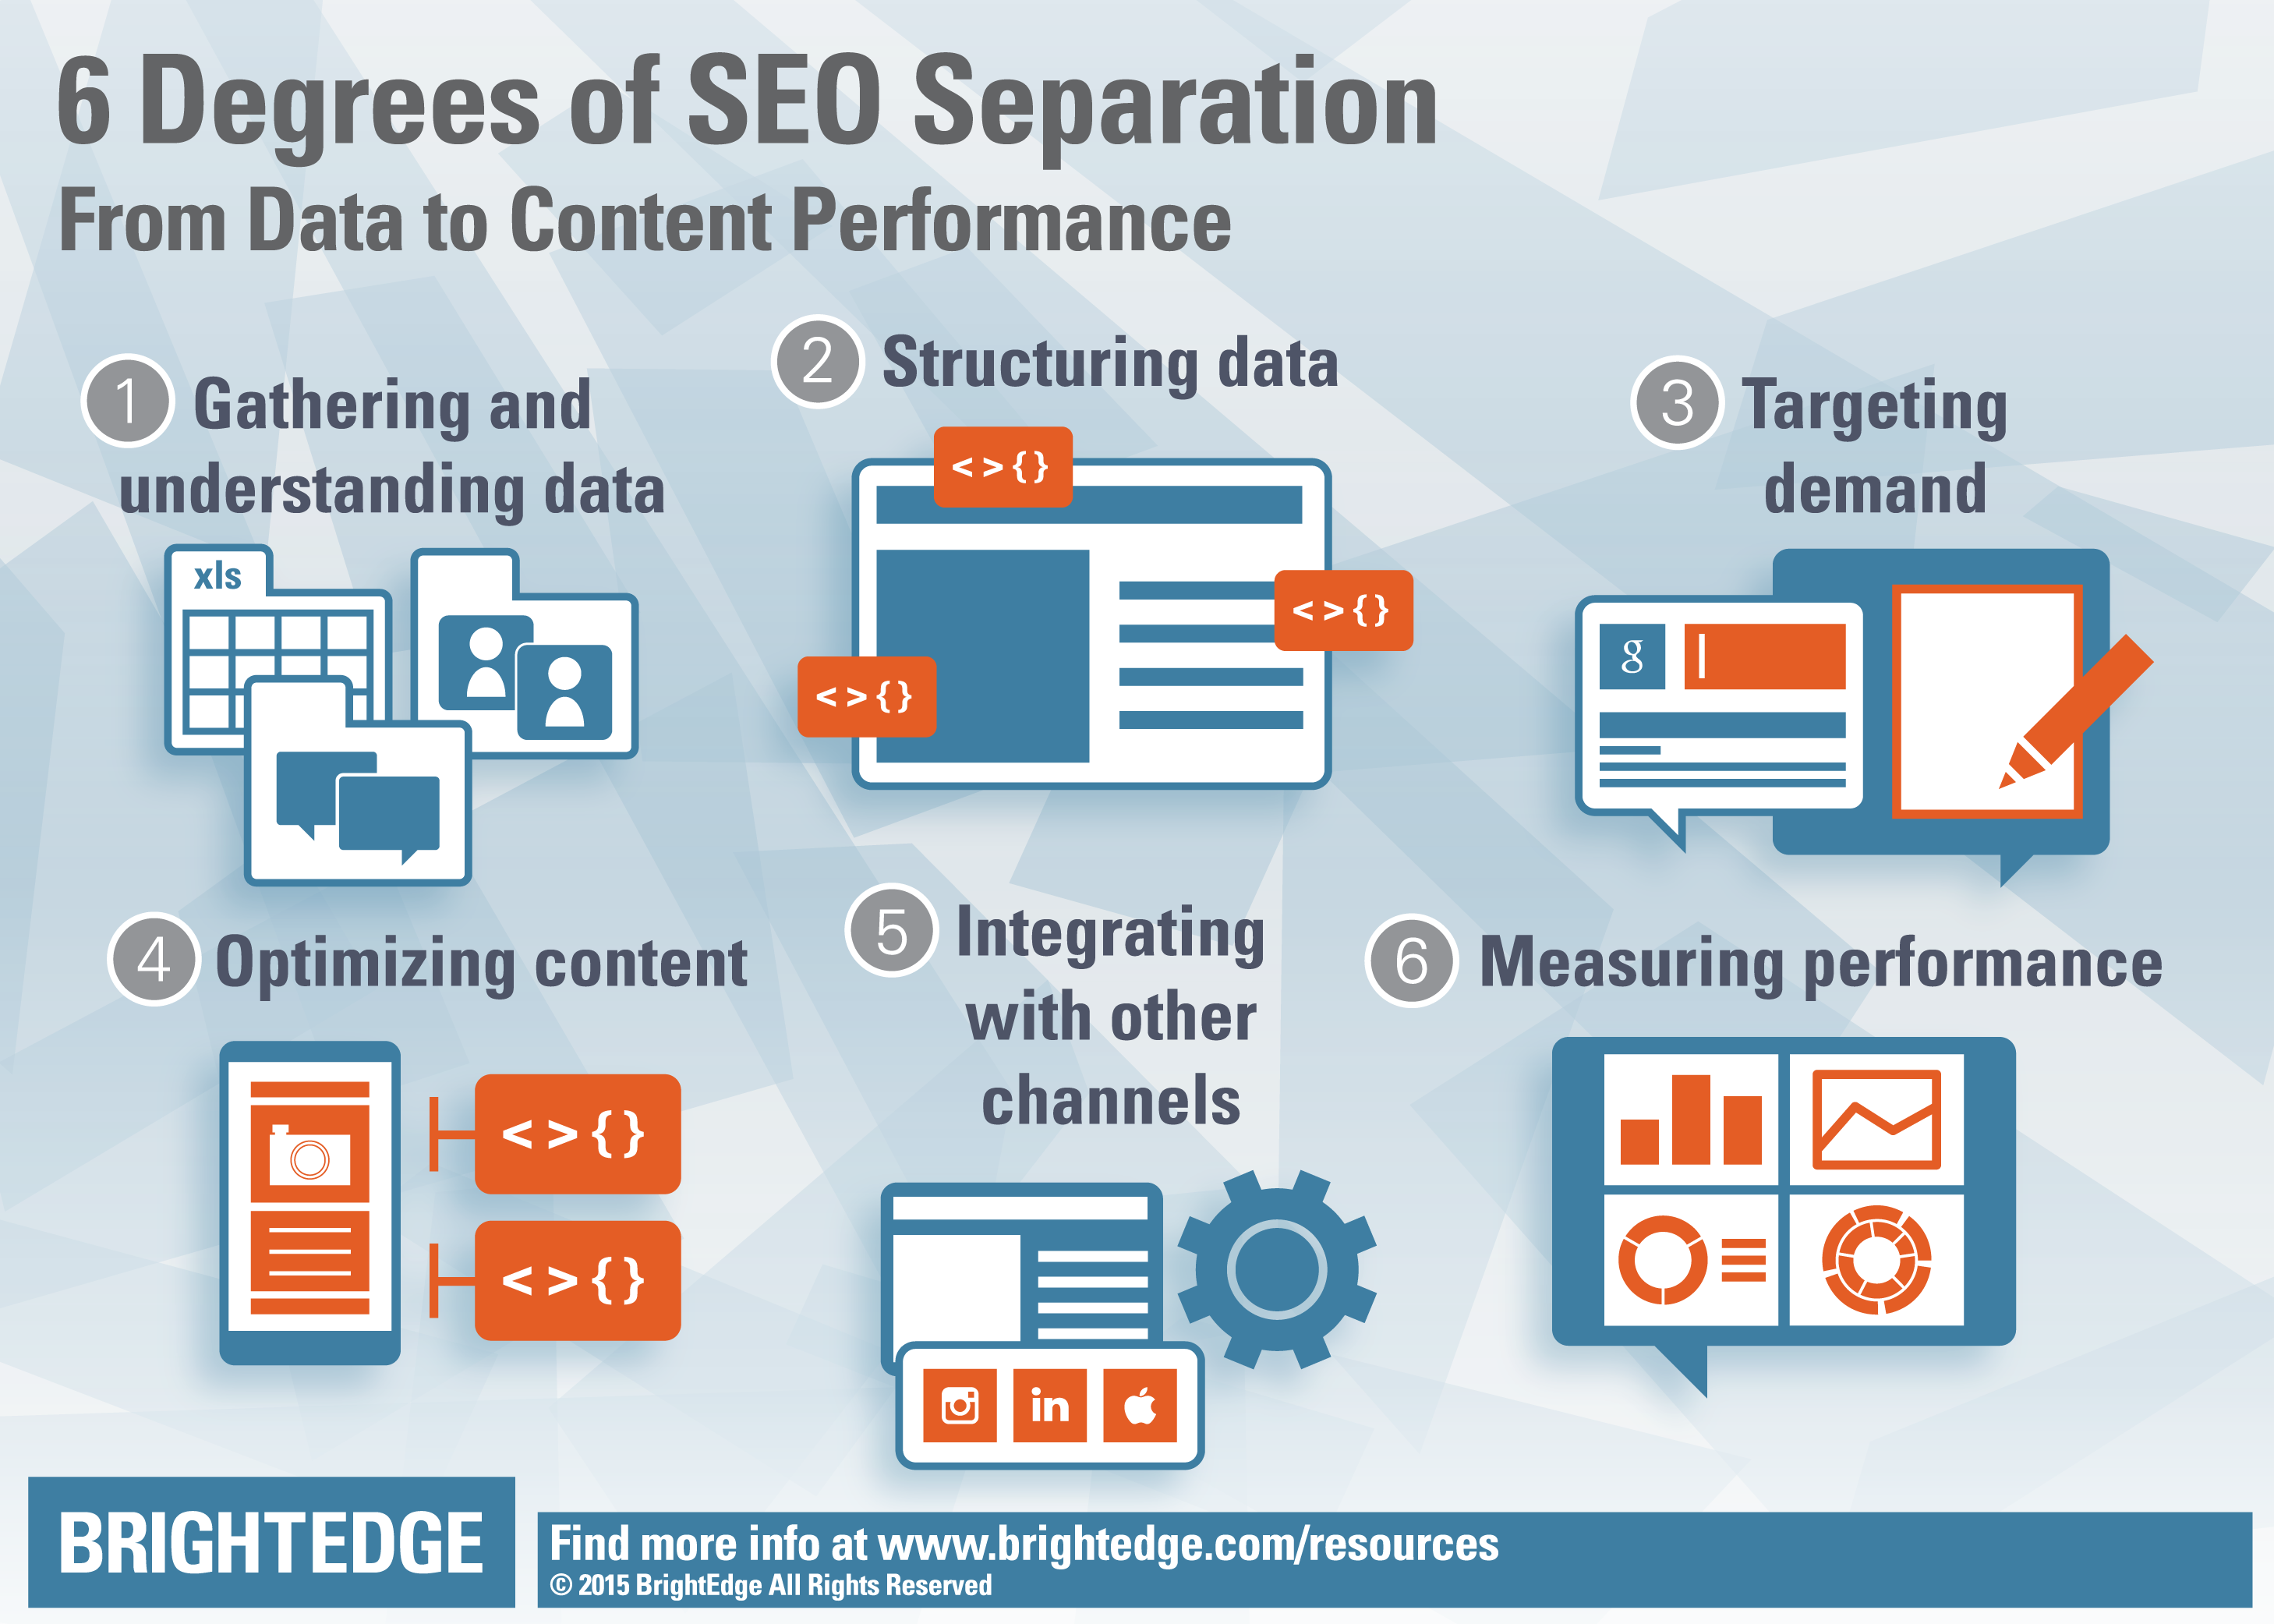 6 Degrees of SEO Separation